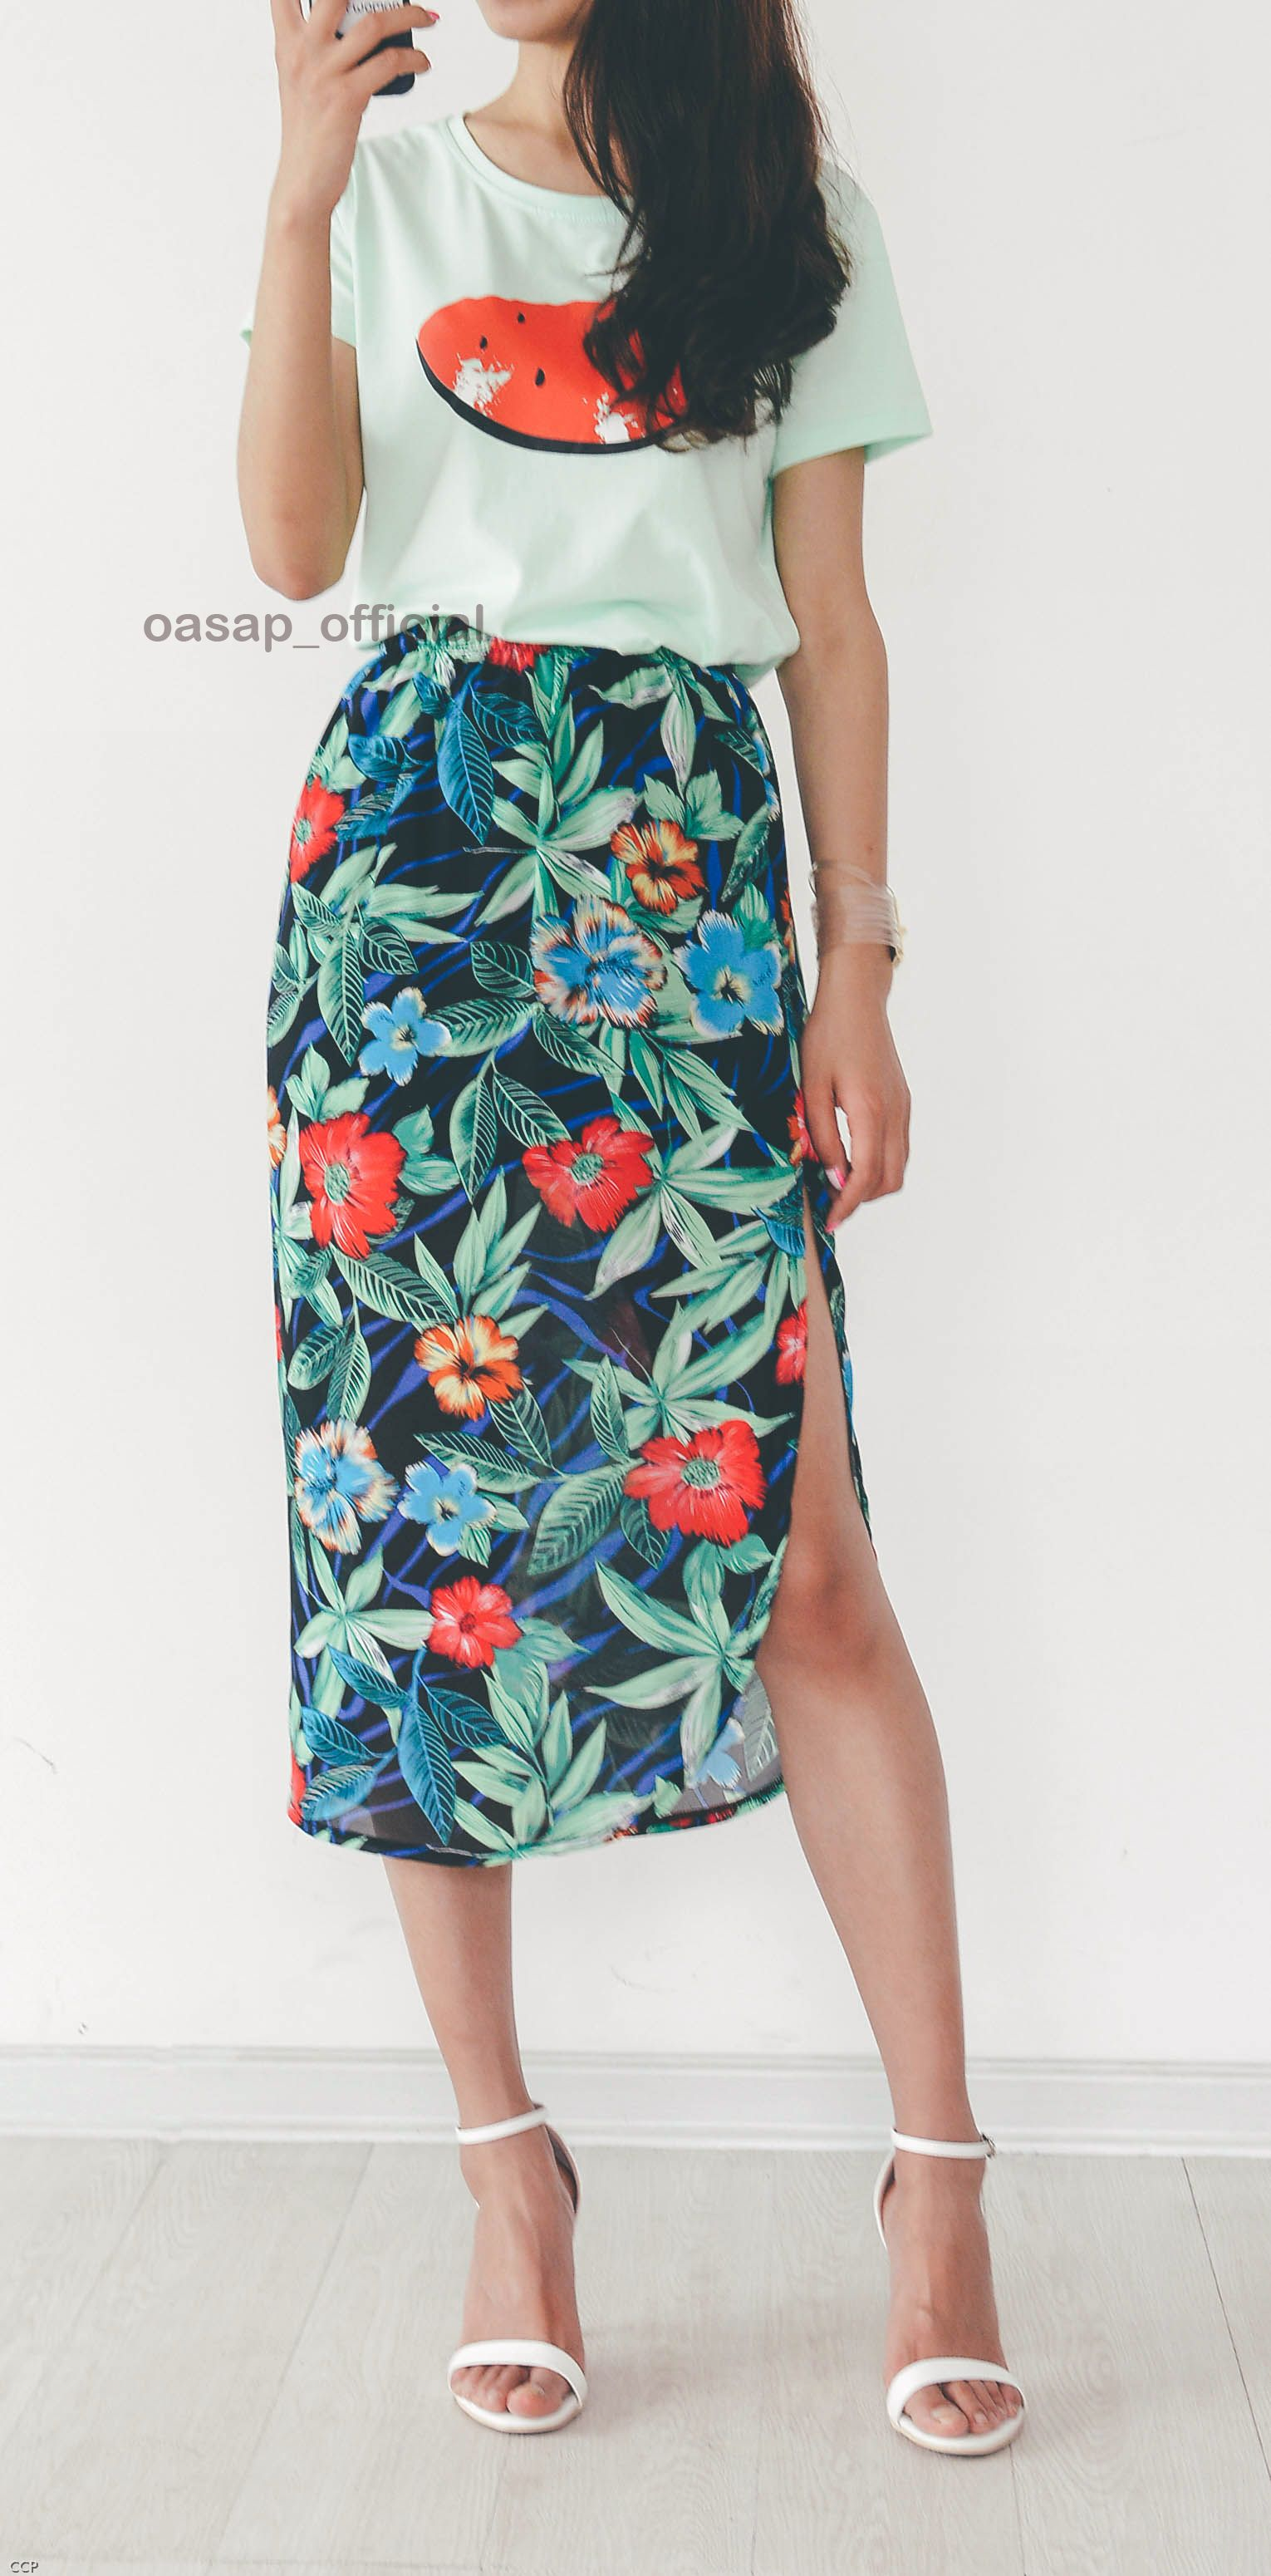 a5b71c5737e3 Rock out with your flowy floral print midi skirt in this HOT summer!Just  show yourself! Enyoy yourself at OASAP!